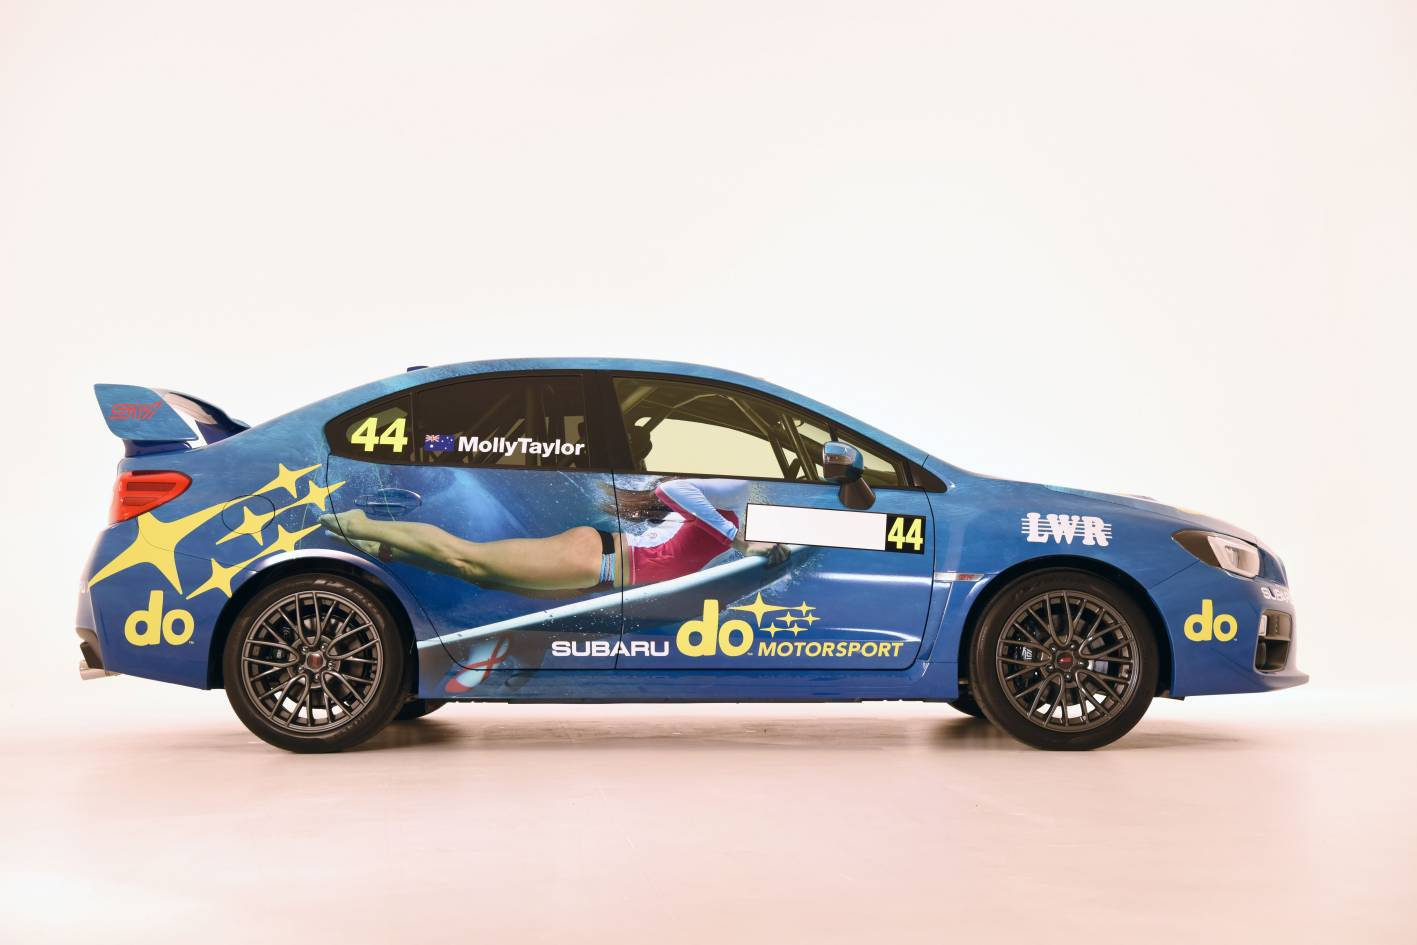 Subaru returns to Rally with do Motorsport - ForceGT.com